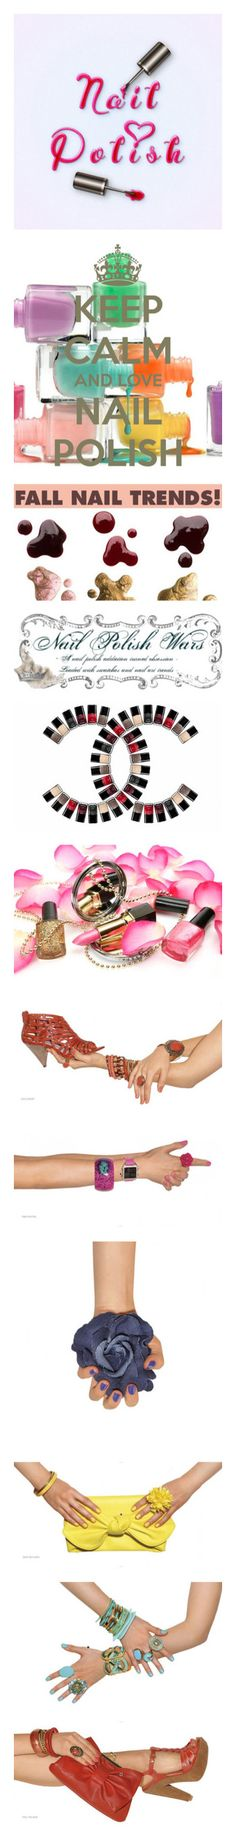 """""""Nail Images"""" by mrs-rc ❤ liked on Polyvore featuring beauty products, nail care, nail polish, sticker nail polish, thin nail polish, thick nail polish, makeup, beauty, nails and cosmetics"""